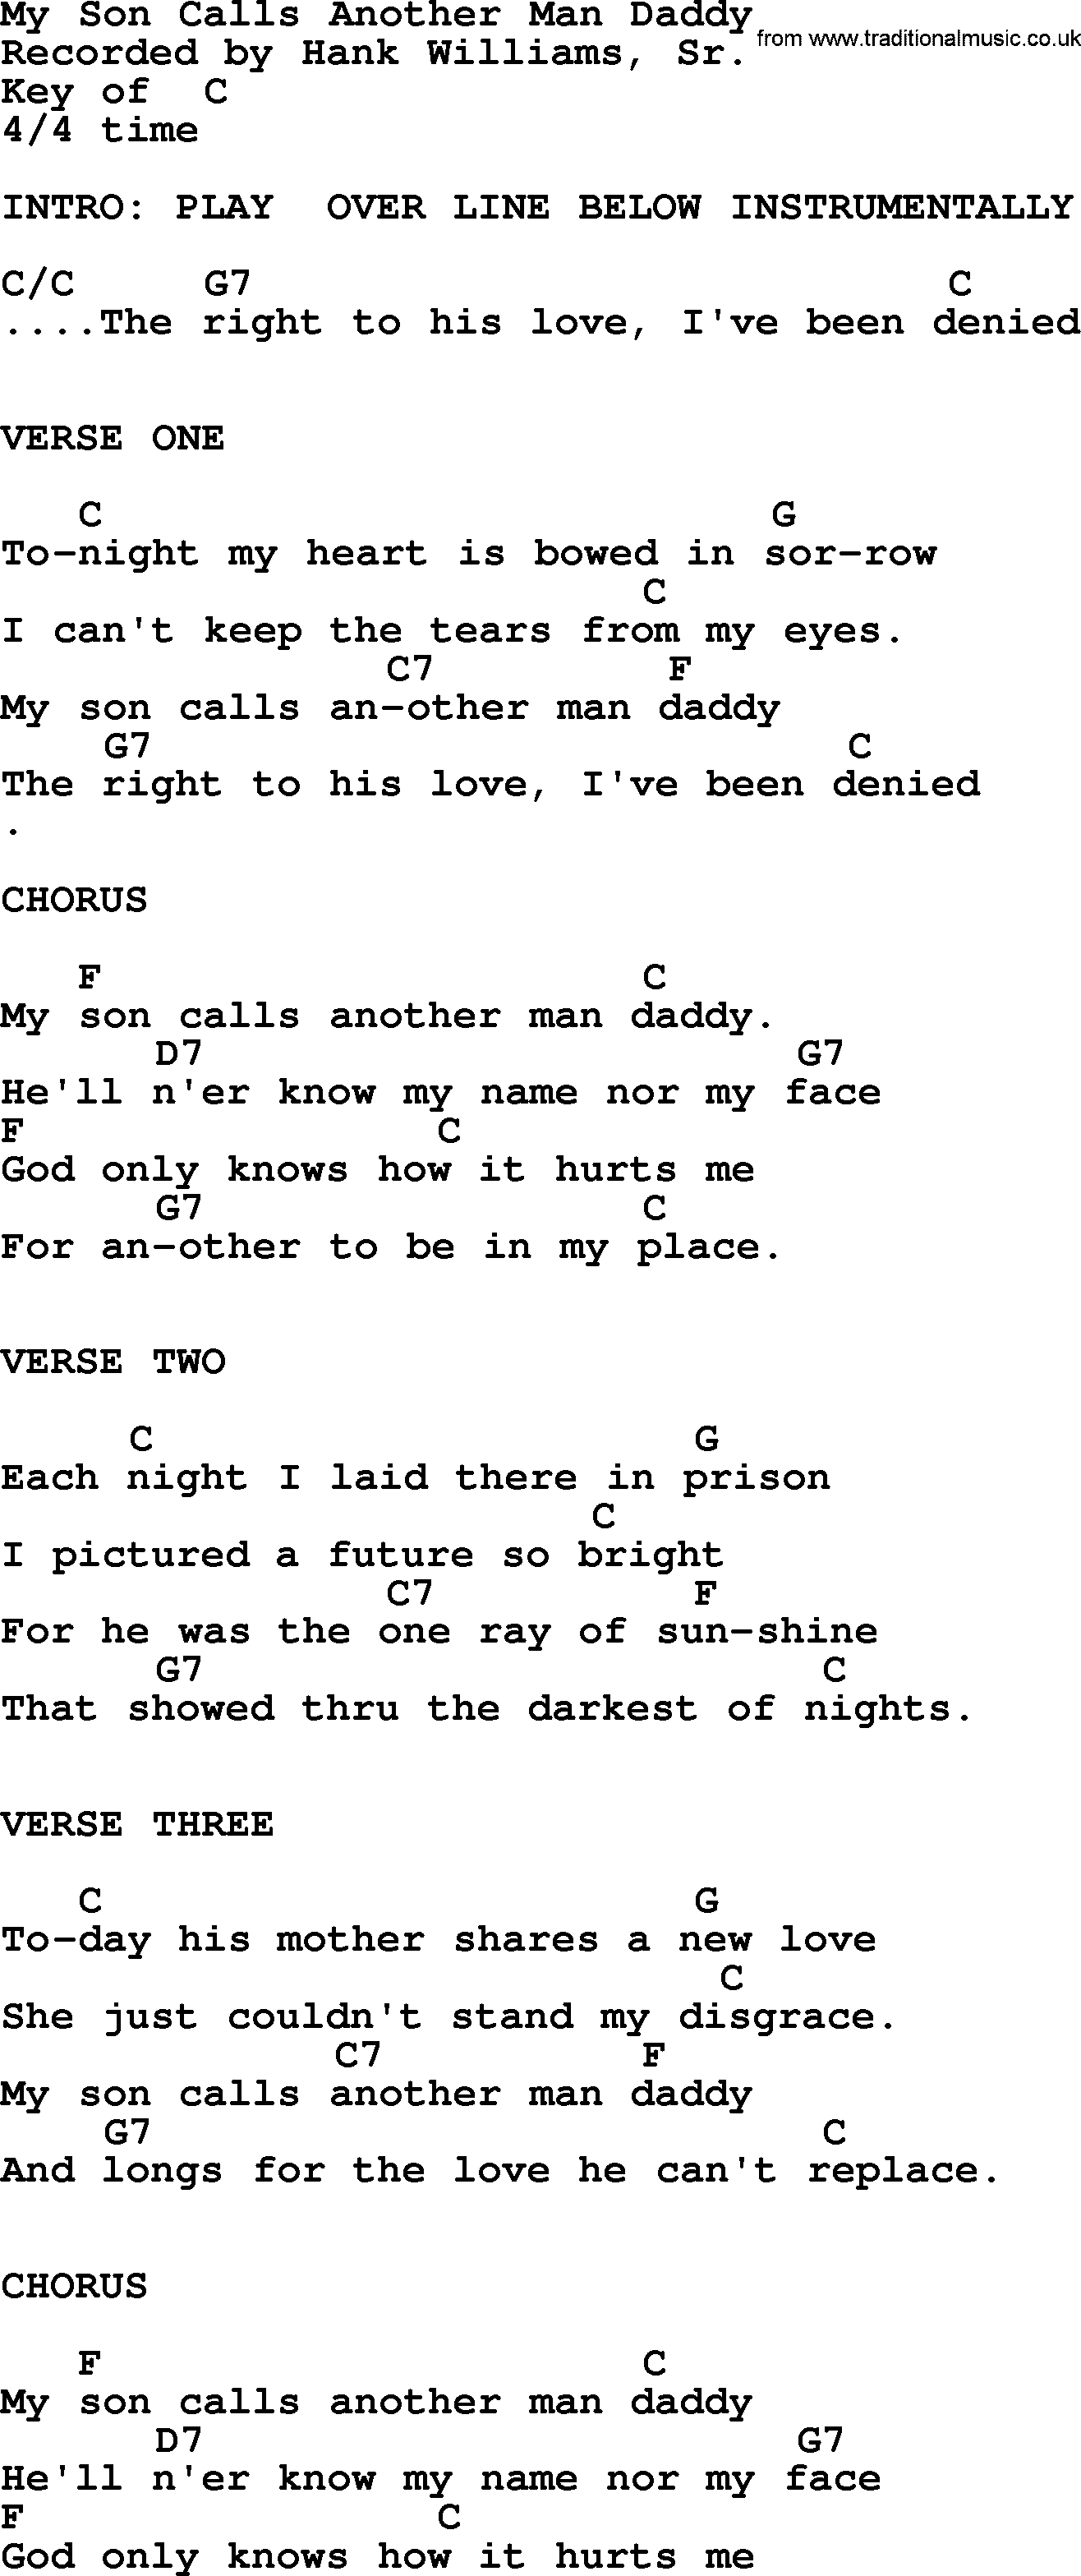 Hank Williams Song My Son Calls Another Man Daddy Lyrics And Chords